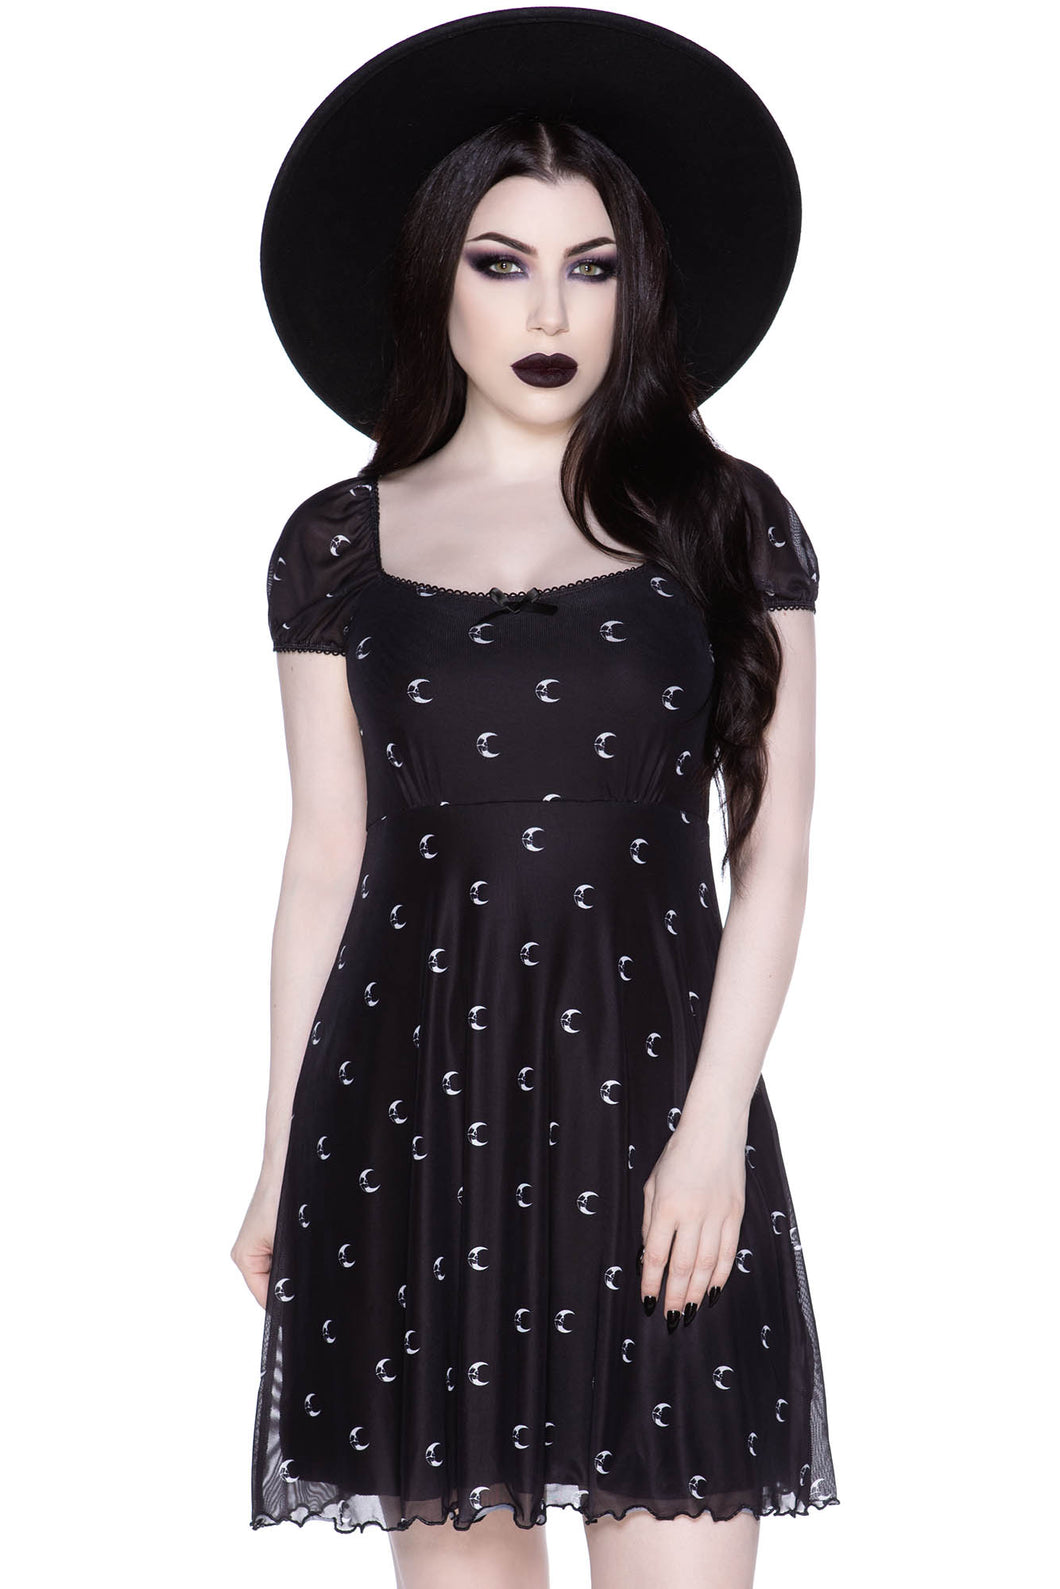 Killstar Mona Babydoll Dress - Kate's Clothing